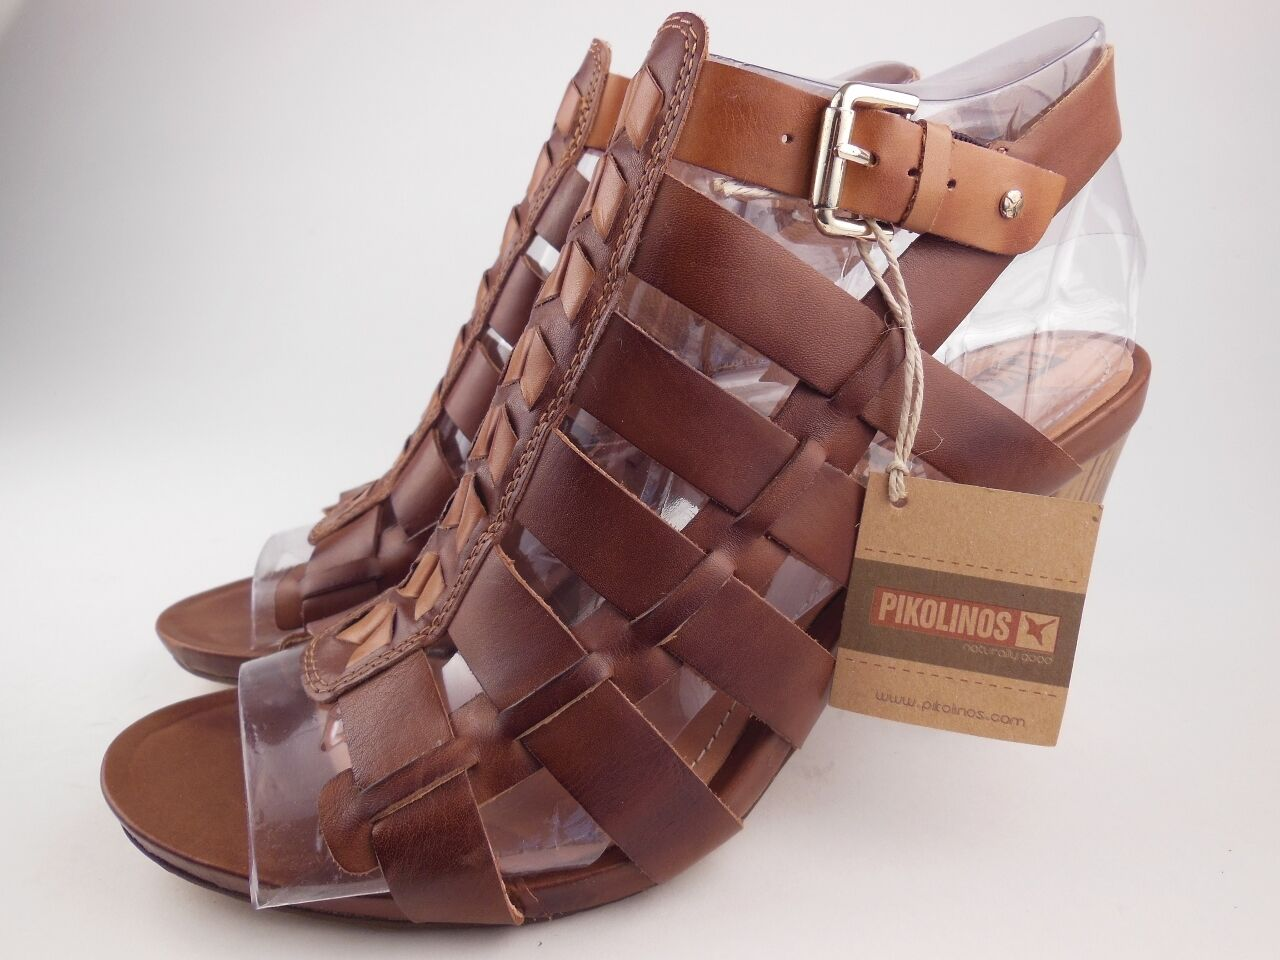 PIKOLINOS pinks Brandy Leather Heeled Sandals Women's Size 41 NEW